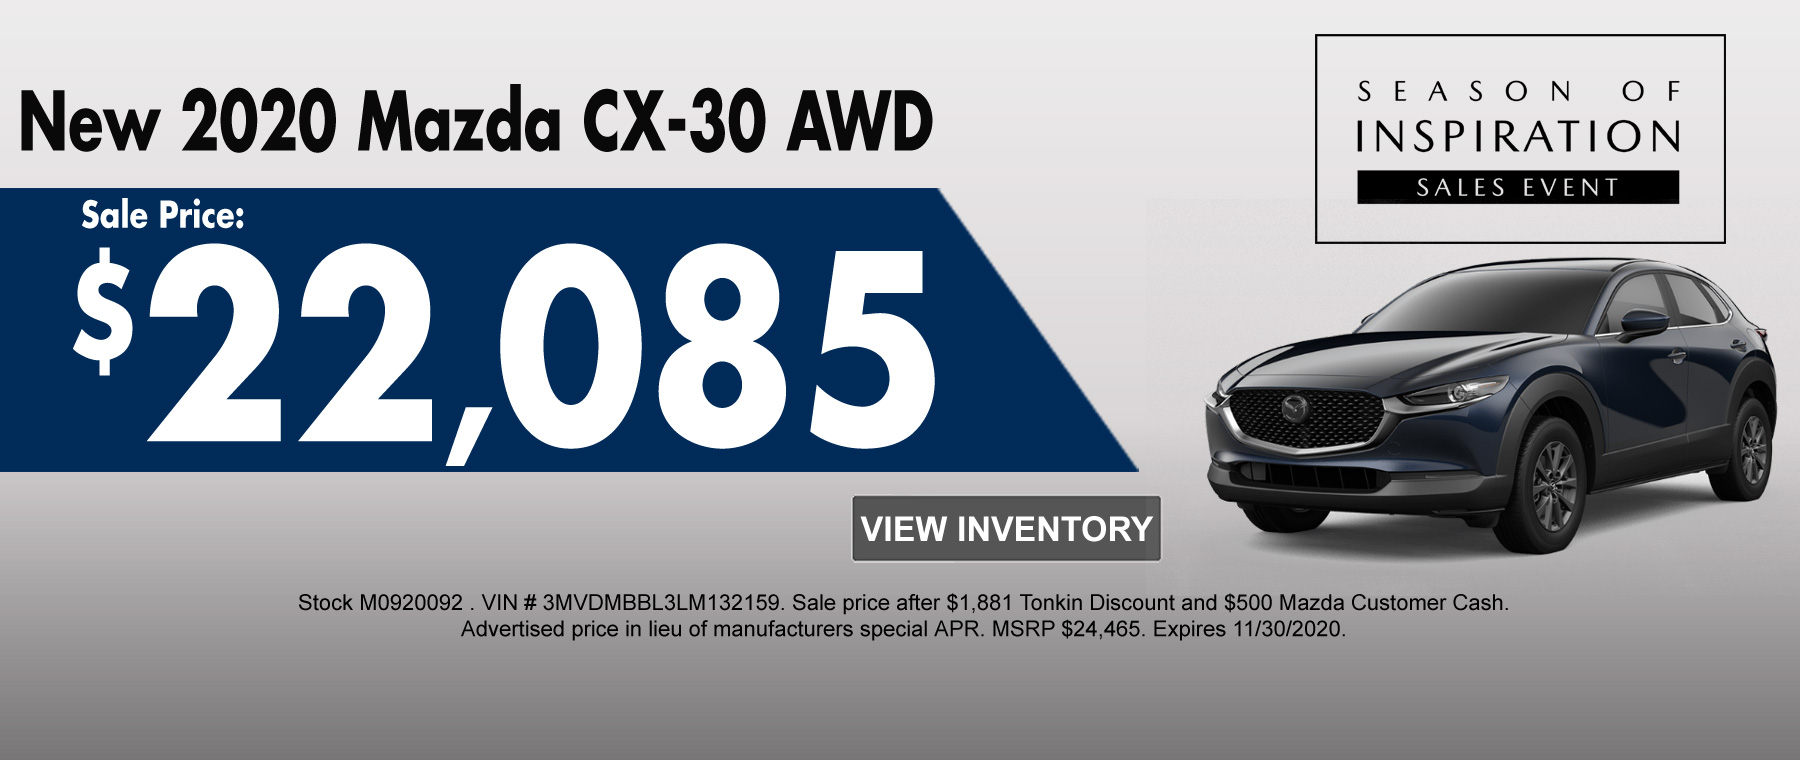 New 2020 CX-30 AWD Special